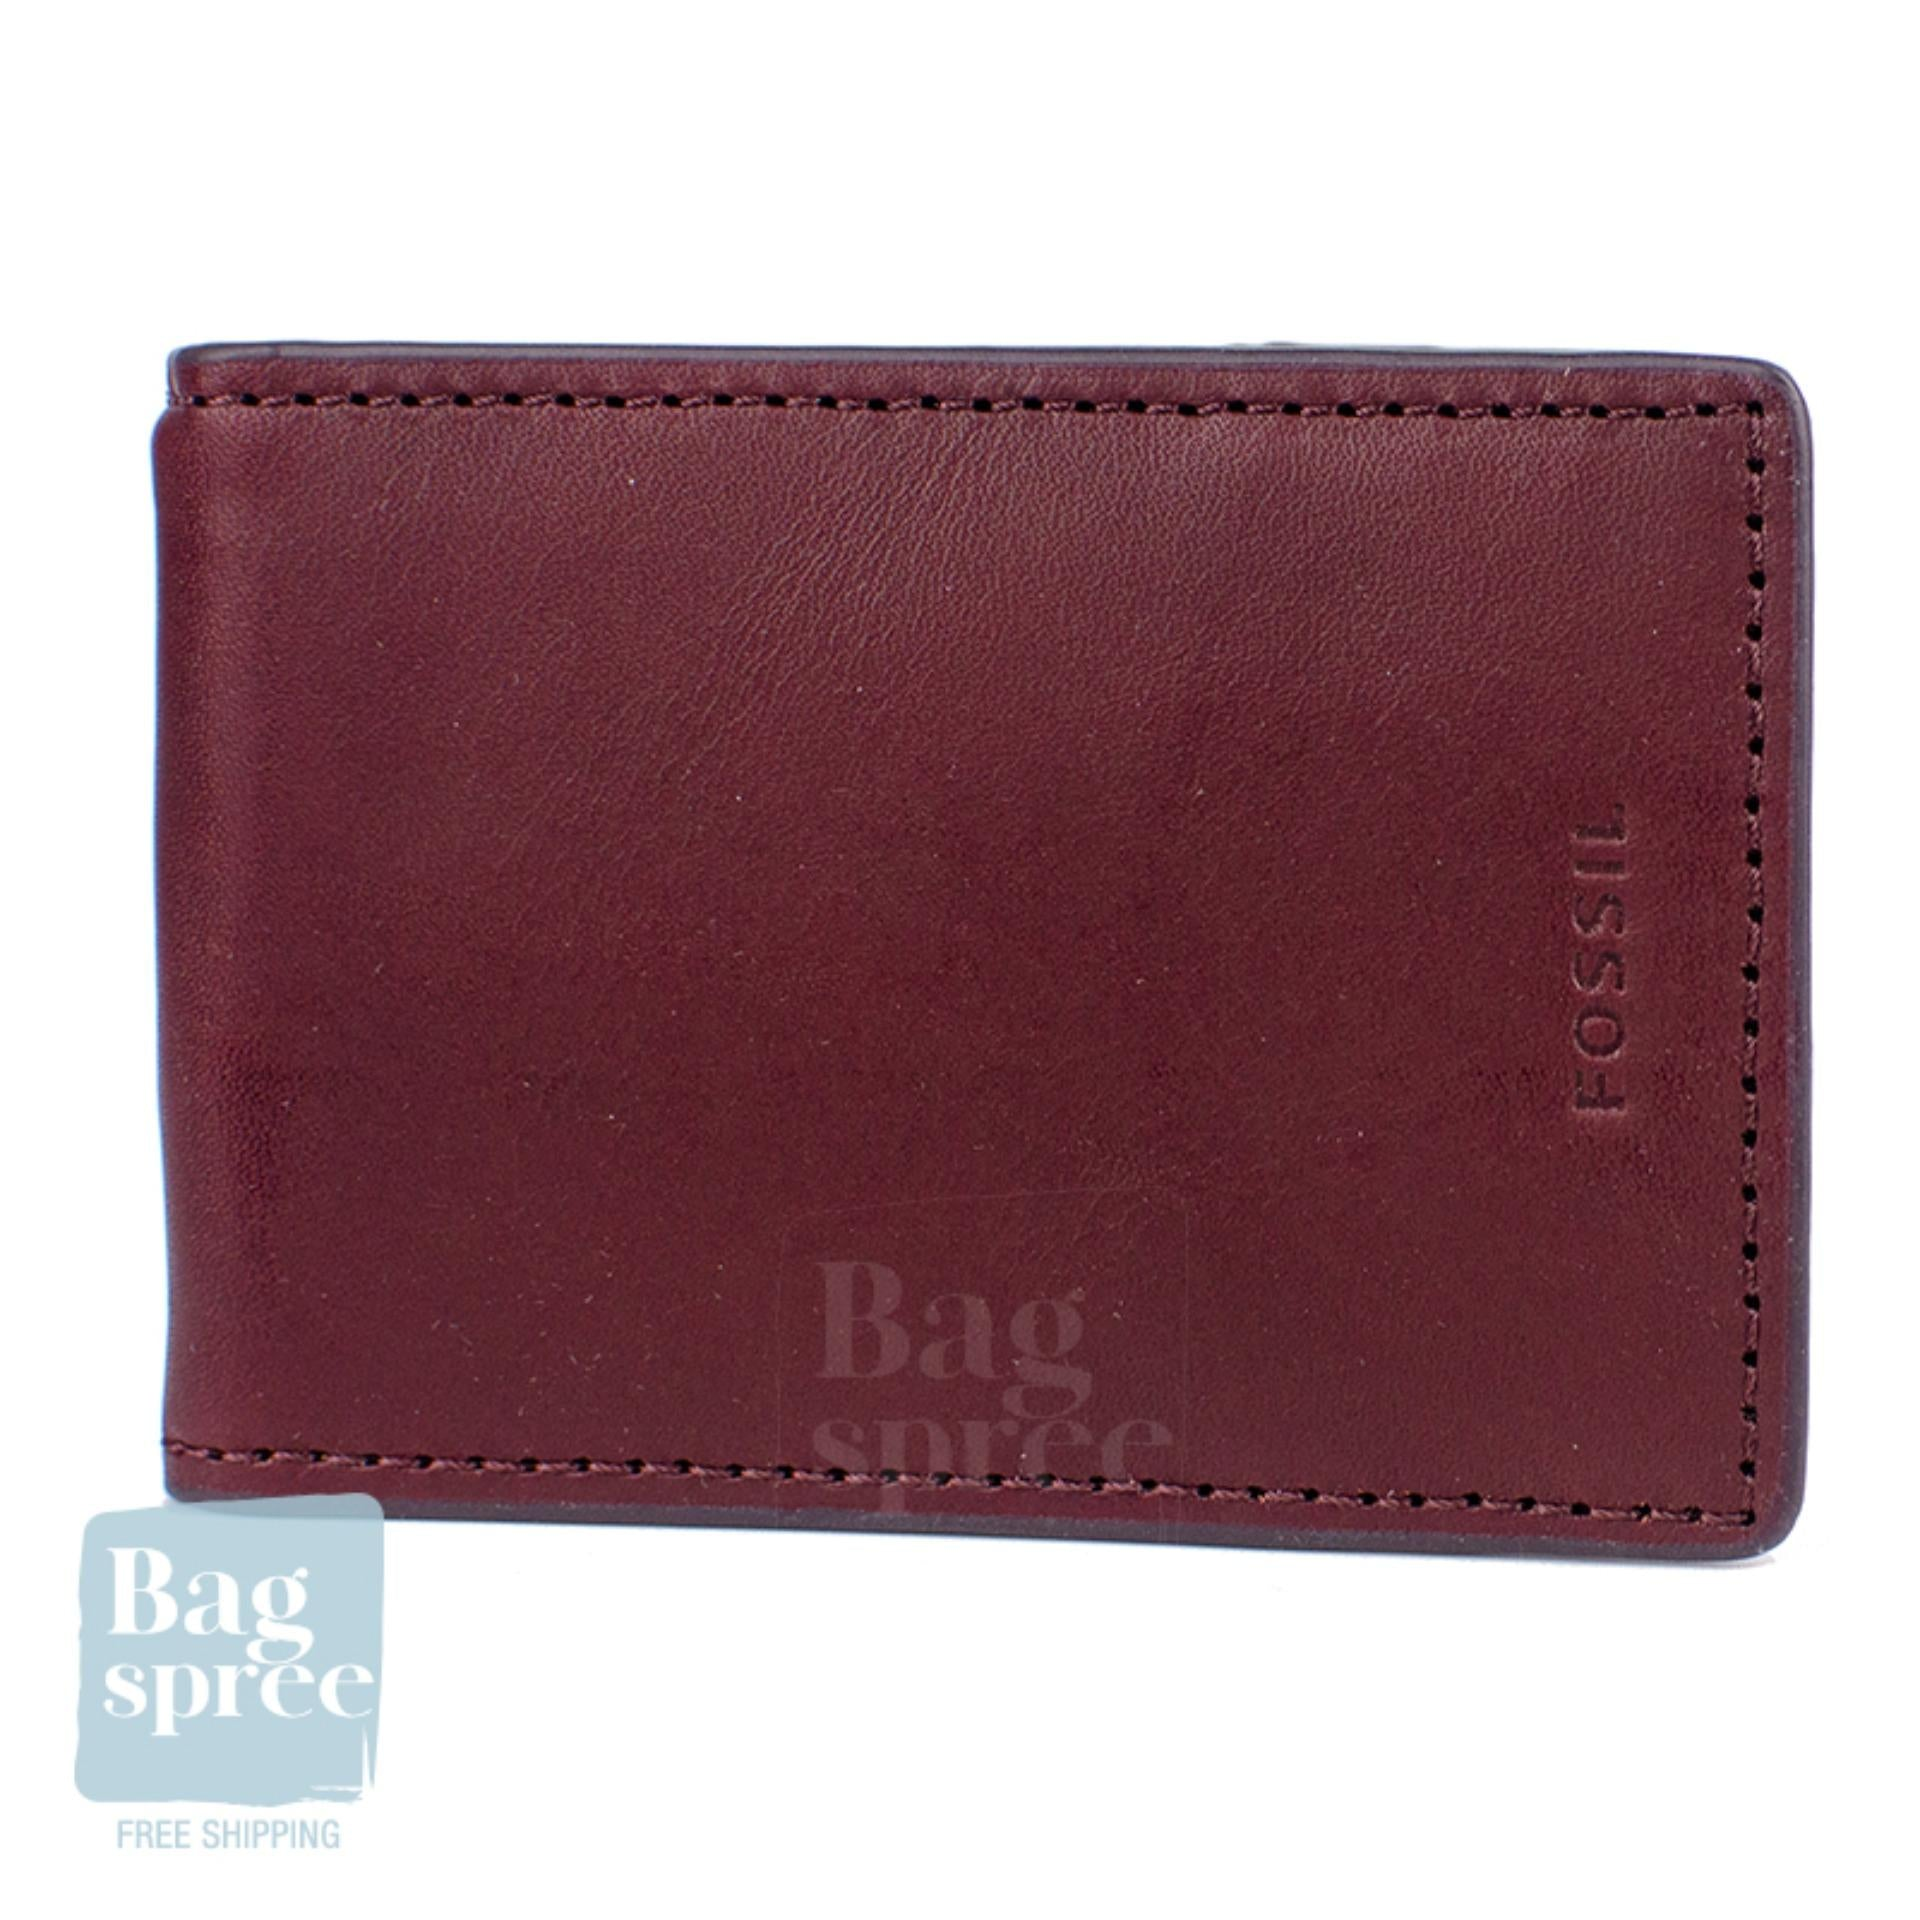 Fossil Men's Leather Wallet Red, Brown ML3848609